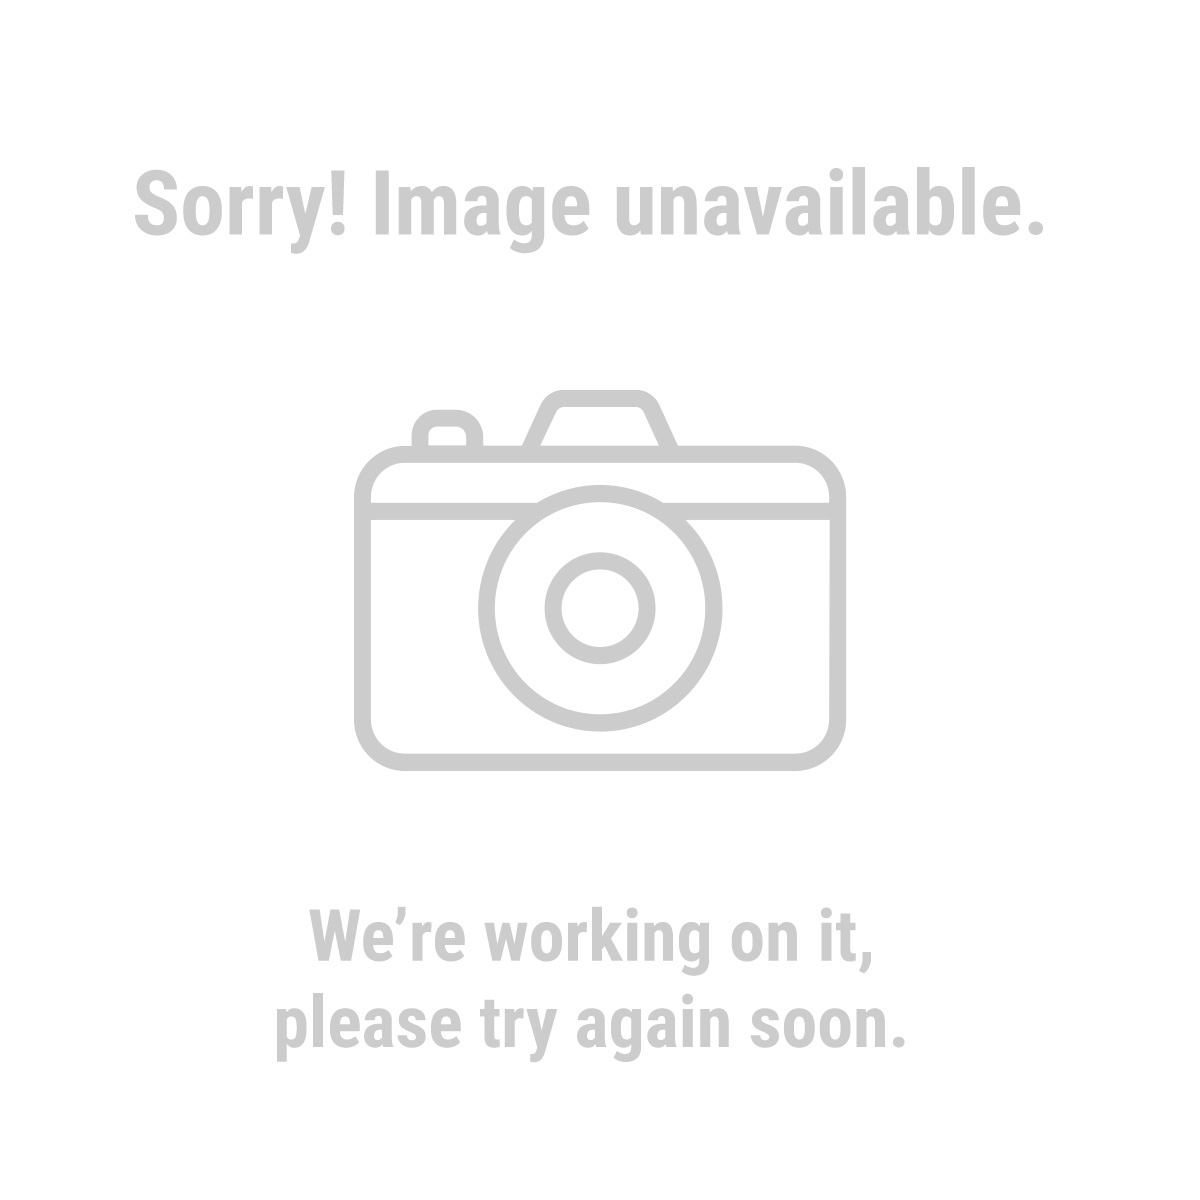 Warrior 68990 13 Piece Bi-metal Hole Saw Set